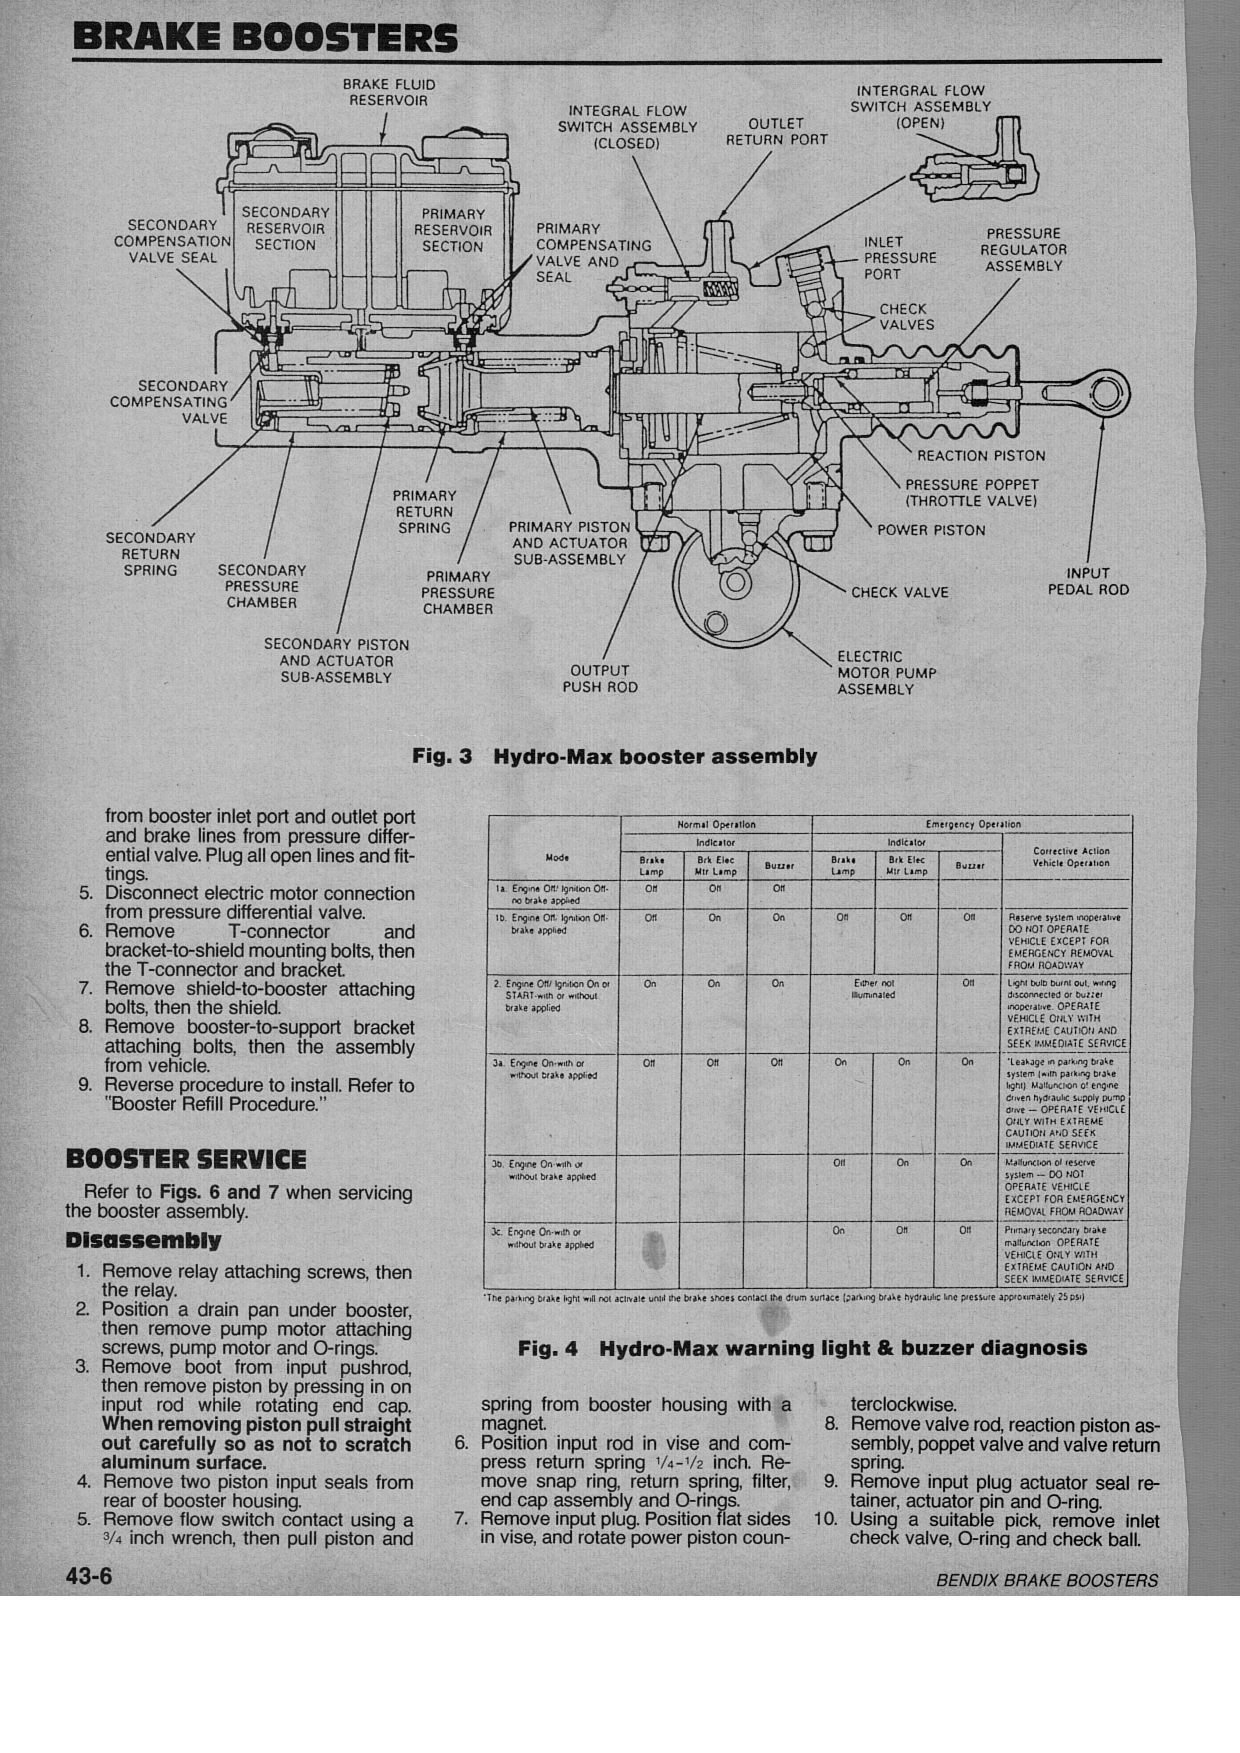 Ford F700 Hydraulic Brake System Diagram : I have a ford f truck with hydralic brakes and the